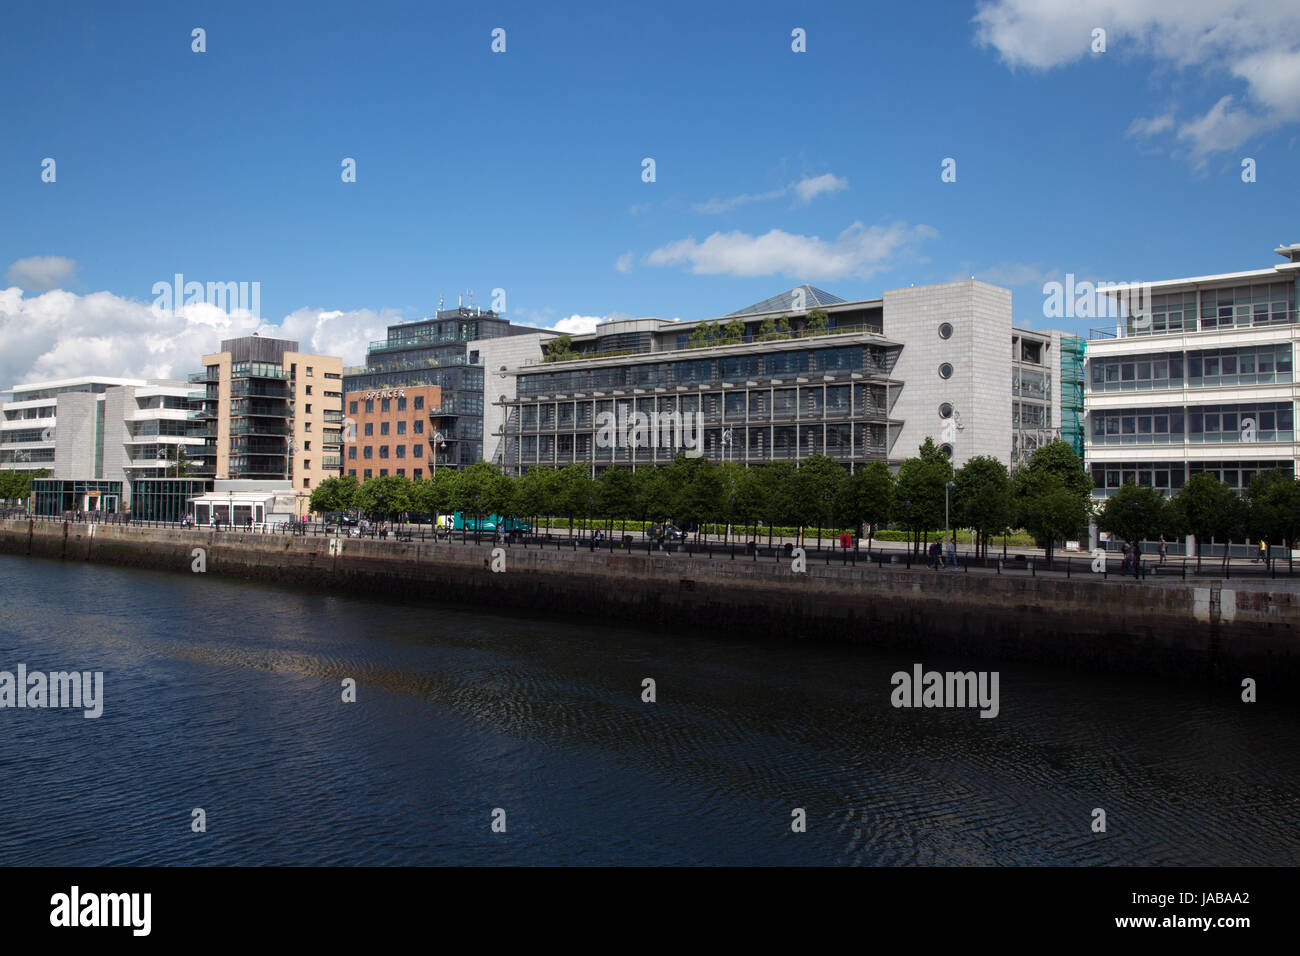 Buildings on the waterfront at Dublin docklands area, Ireland. - Stock Image